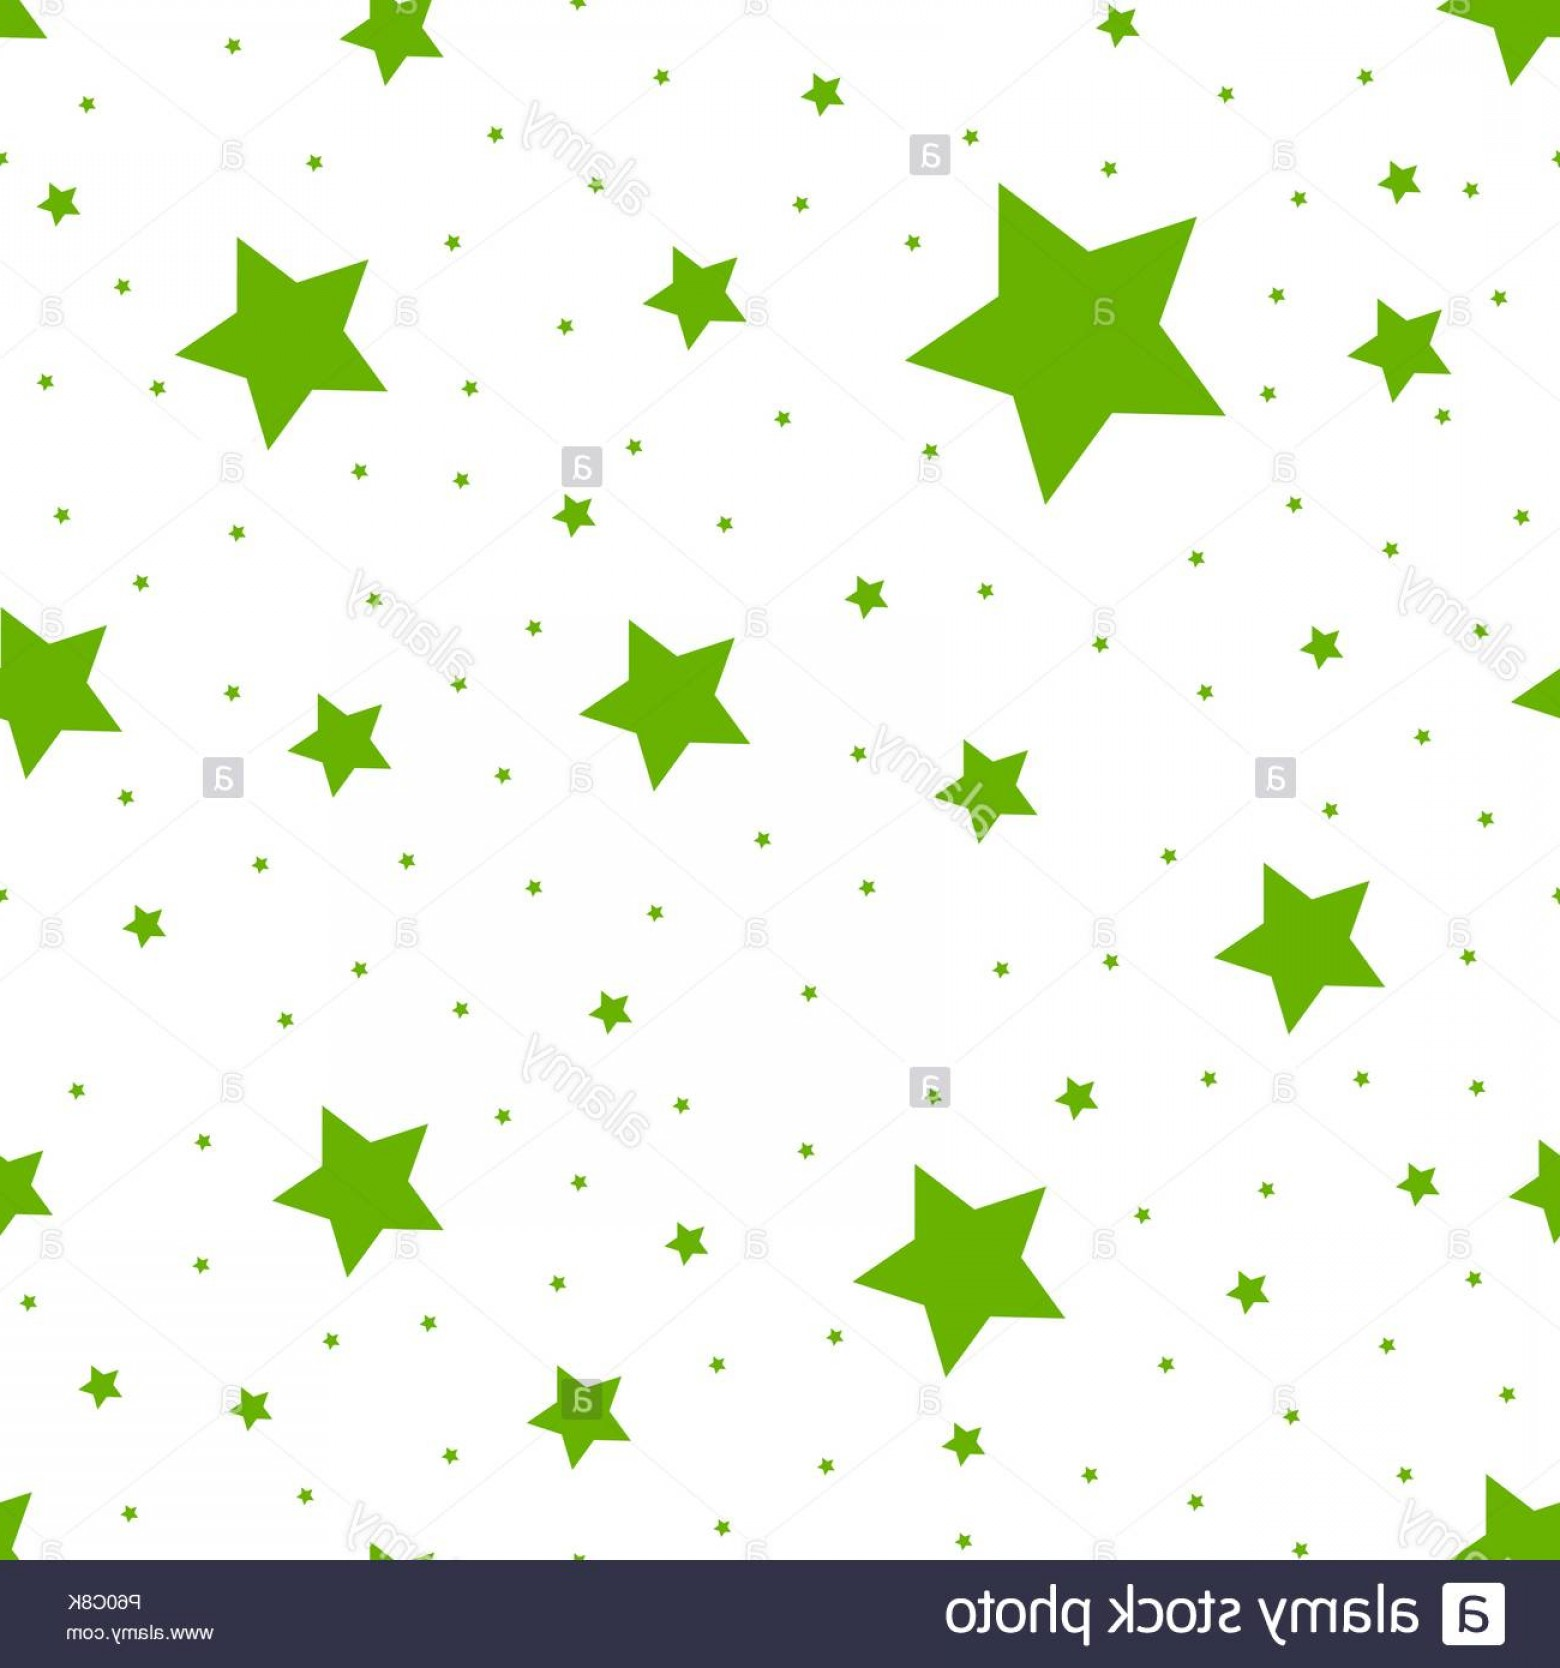 Starburst Icon Vector: Green Seamless Star Pattern Repeating Star Background Simple Seamless Star Icon Vector Pattern Green Star Eps Image